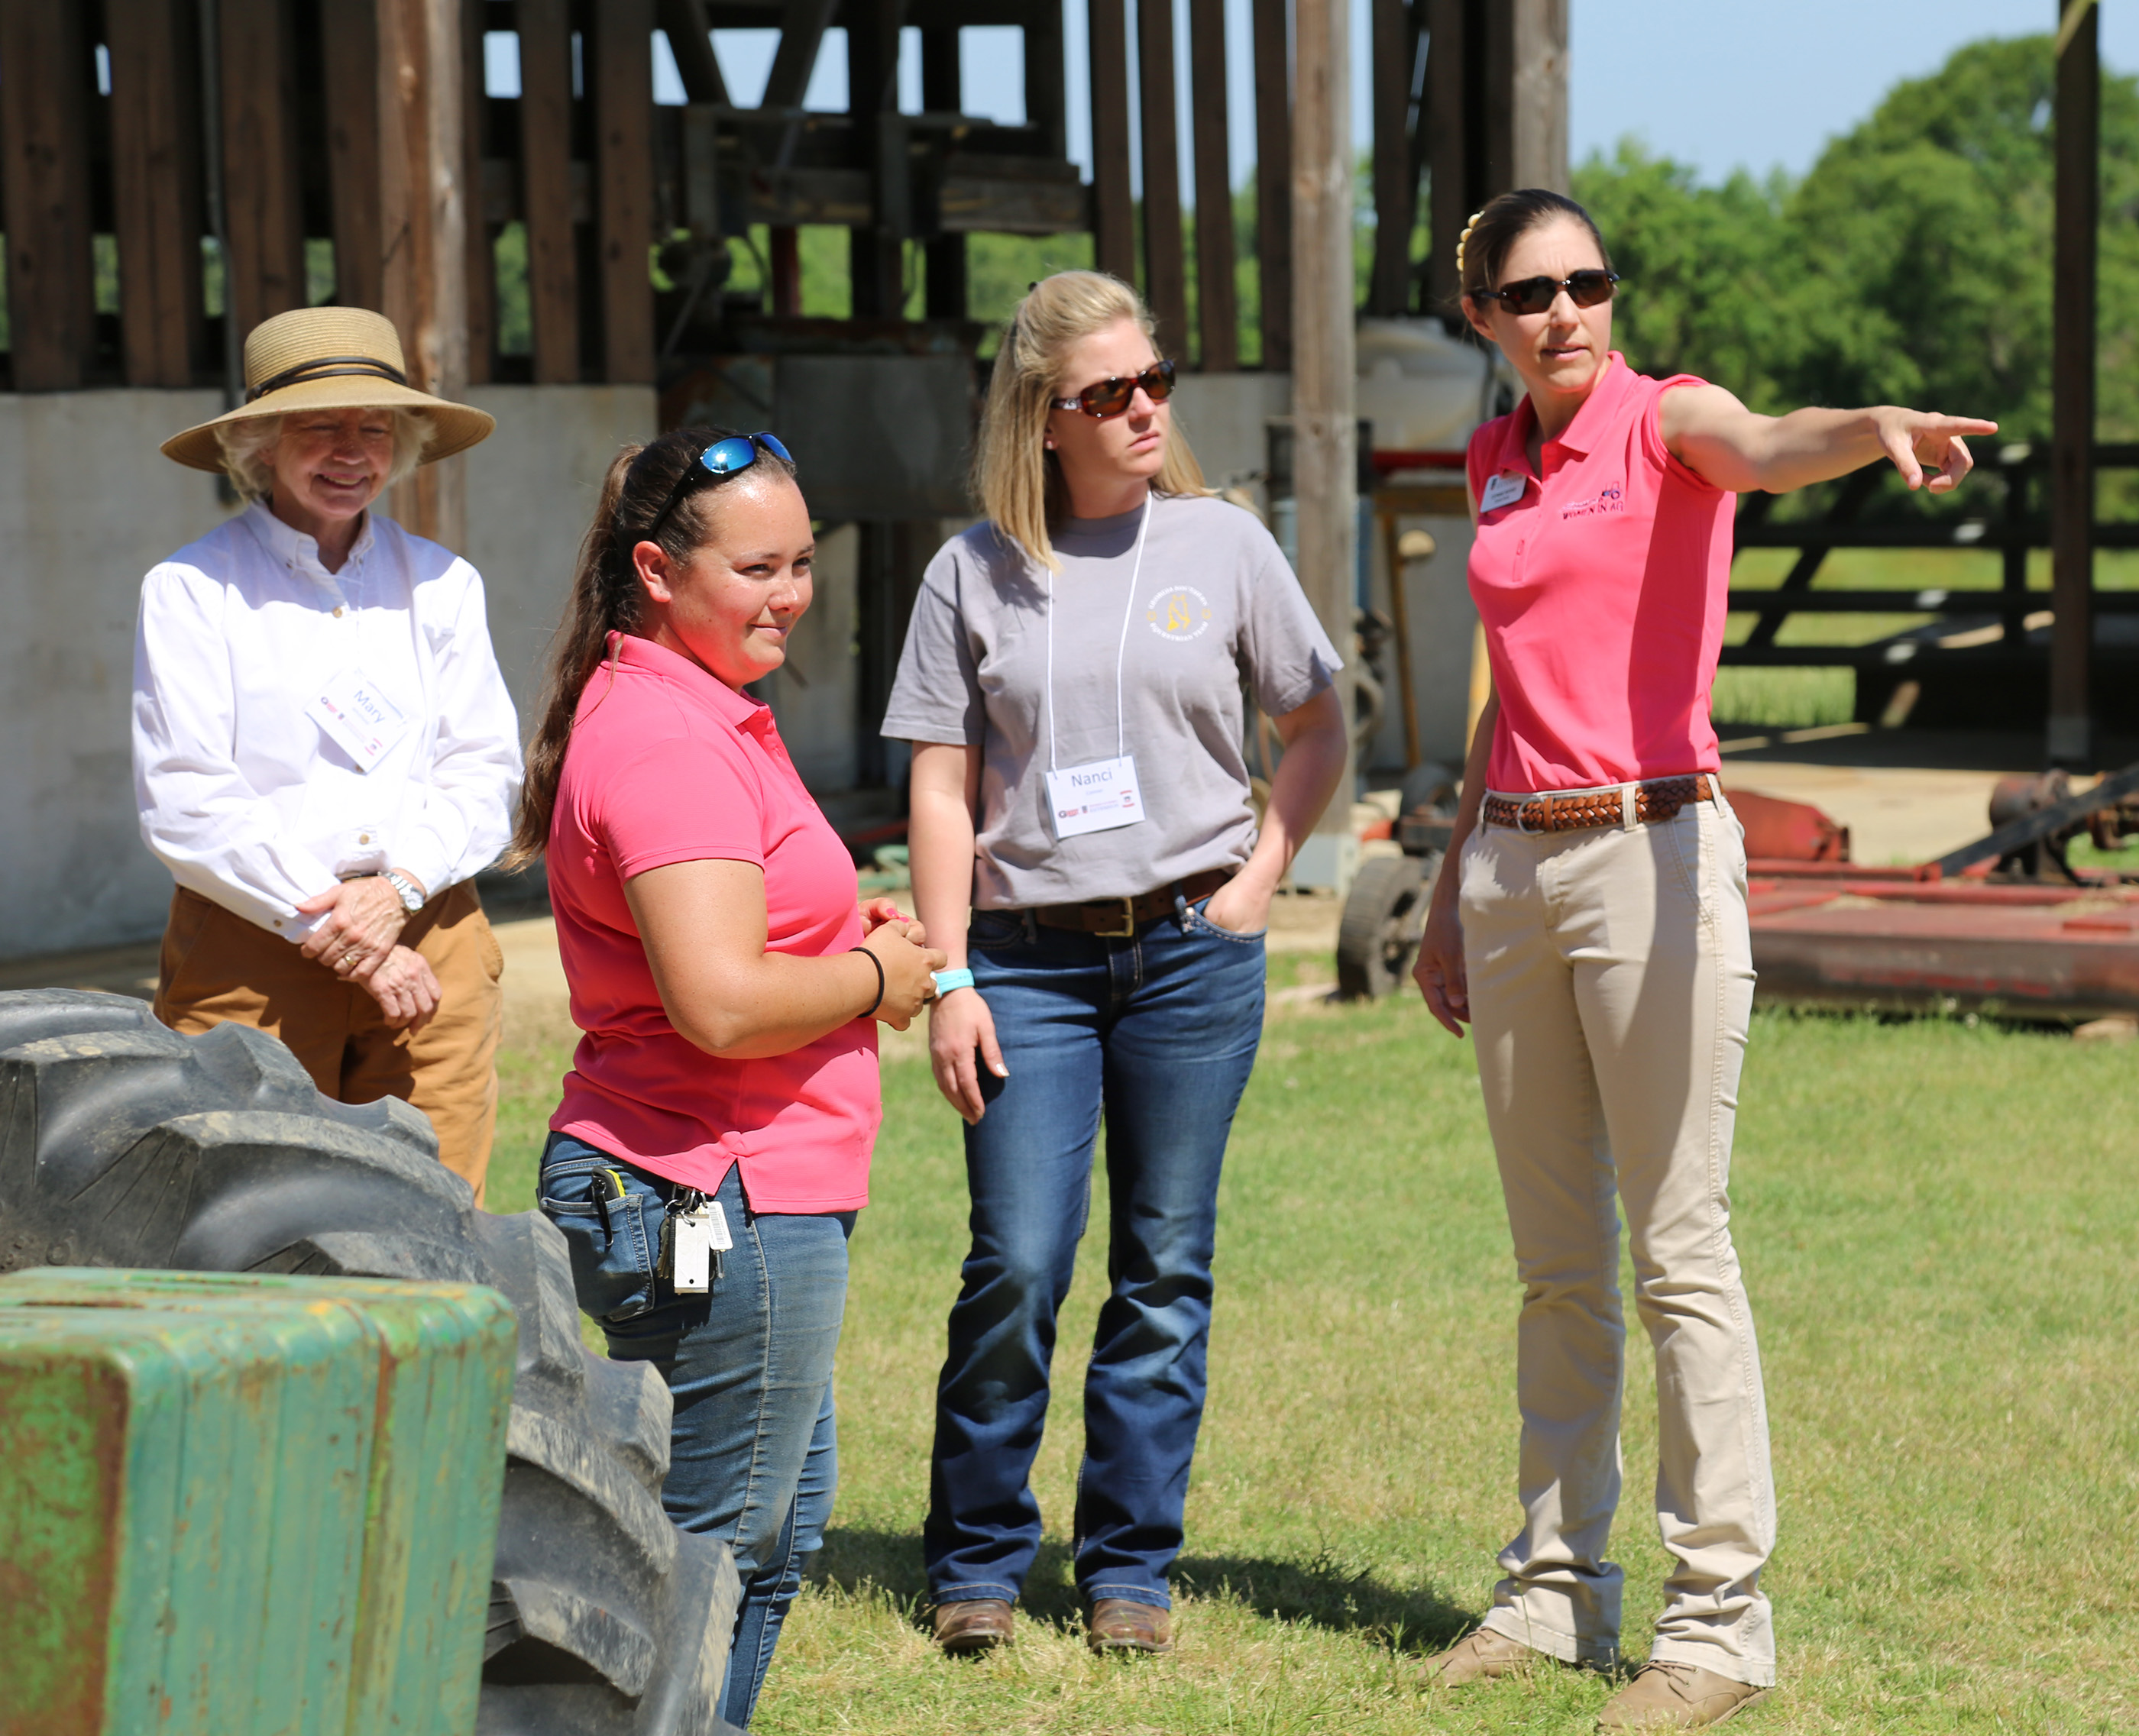 UGA Coweta County Extension Coordinator Stephanie Butcher (right) teaches during the Southern Women in Agriculture Cattle Workshop held on the UGA Tifton Campus, April 29-30.